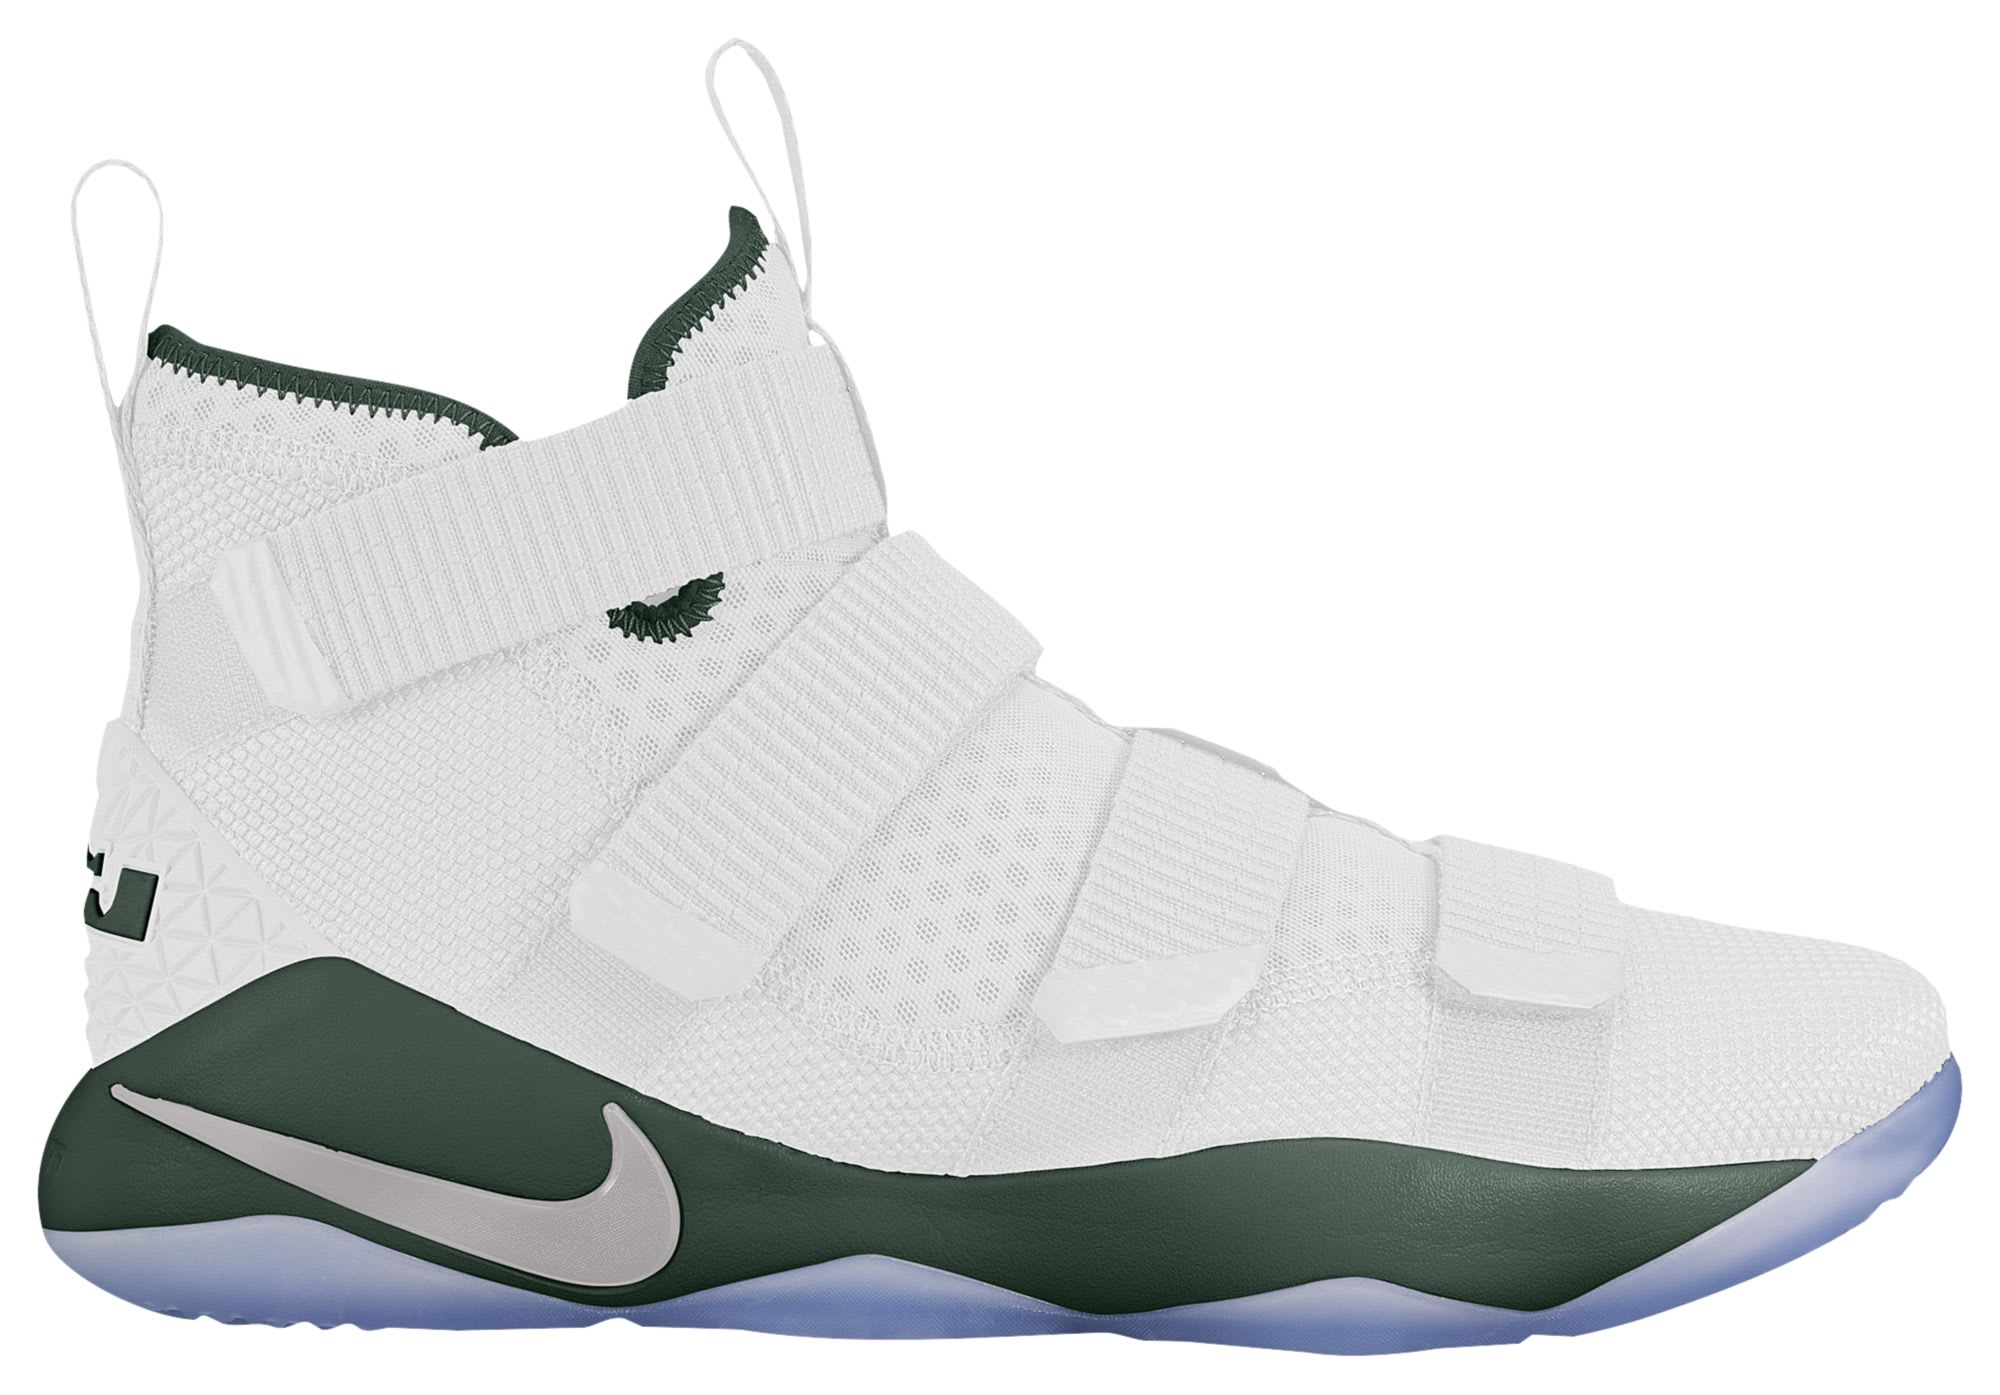 Nike LeBron Soldier 11 TB White Green